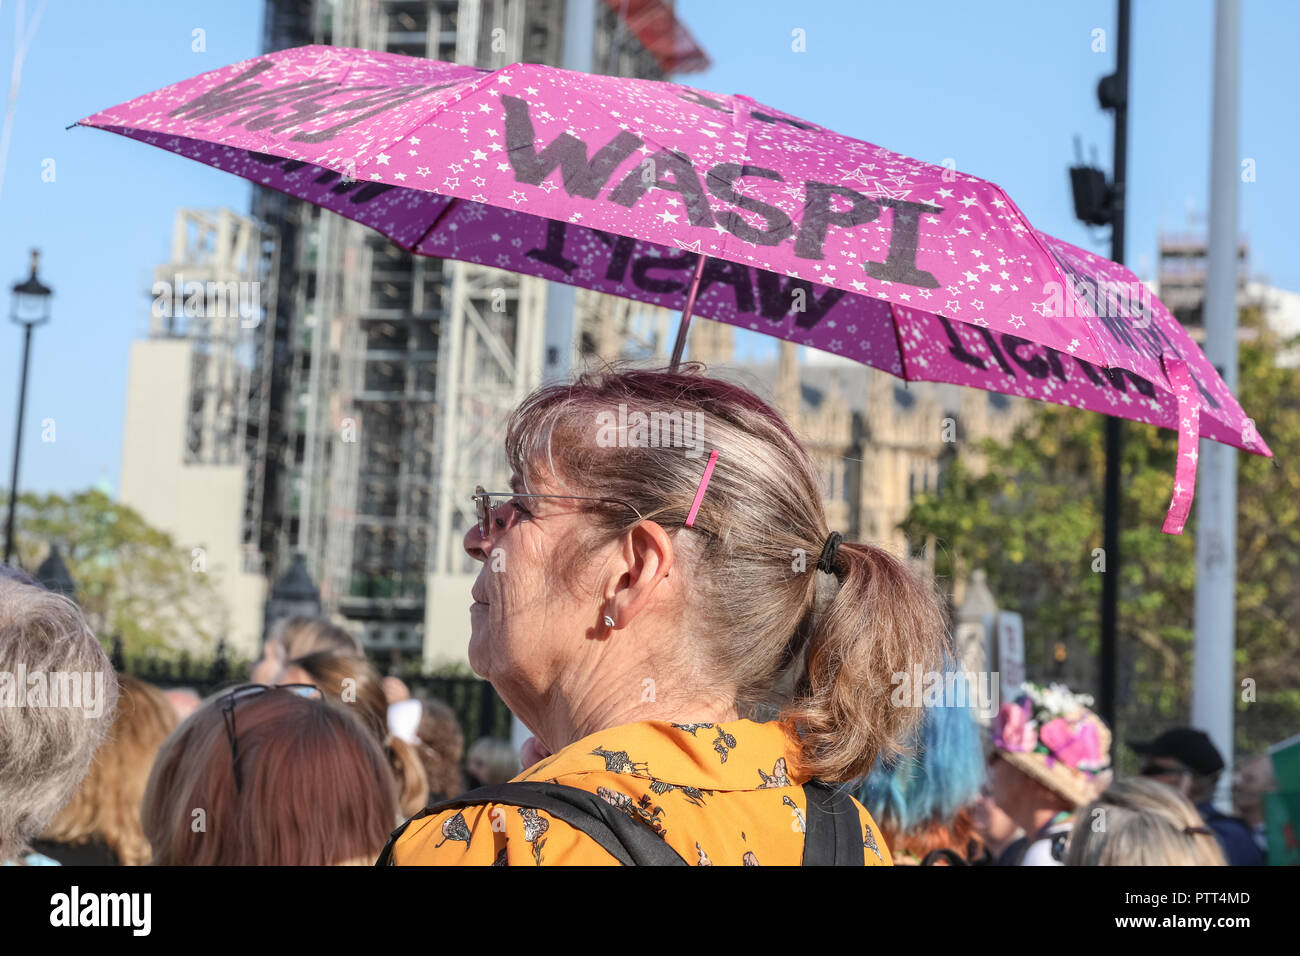 Westminster, London, 10th Oct 2018. A with Waspi umbrella listens to the speakers. Women's pension groups, including the WASPI Campaign, have organised a march from Hyde Park to Parliament Square where several thousand women demonstrate for pension equality in British state pensions. Credit: Imageplotter News and Sports/Alamy Live News - Stock Image